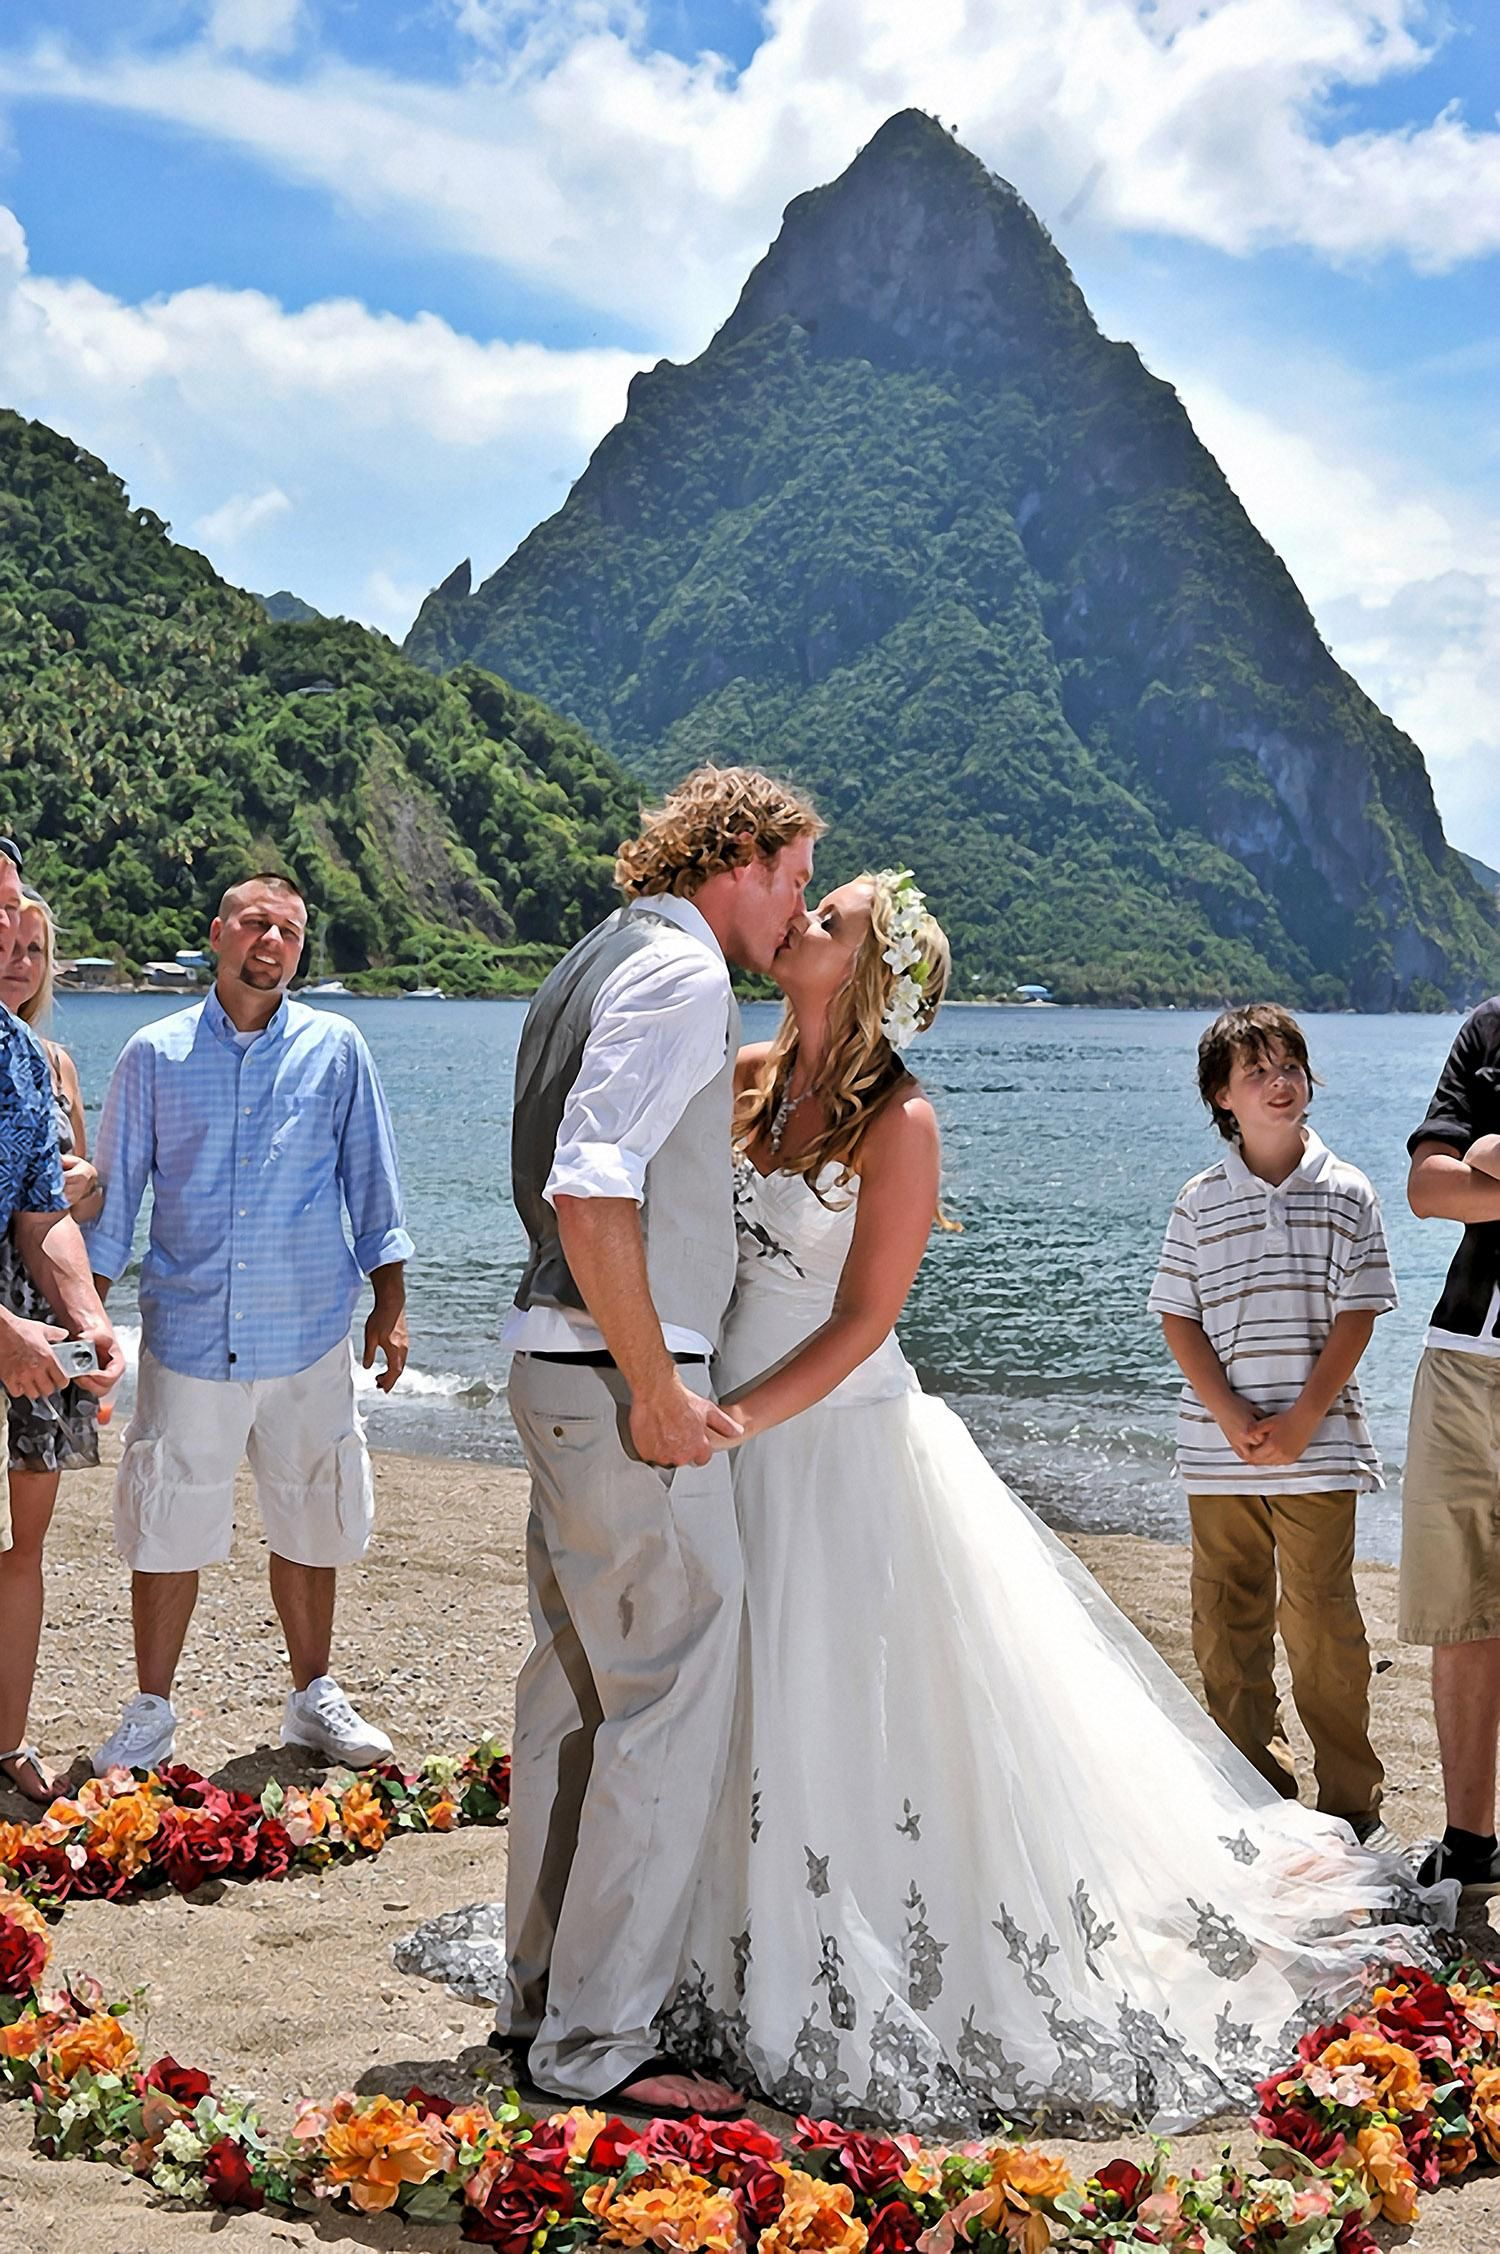 Passions Of The Heart Wedding Package In St Lucia Click Image For More Information: Wedding Venues St Lucia At Websimilar.org